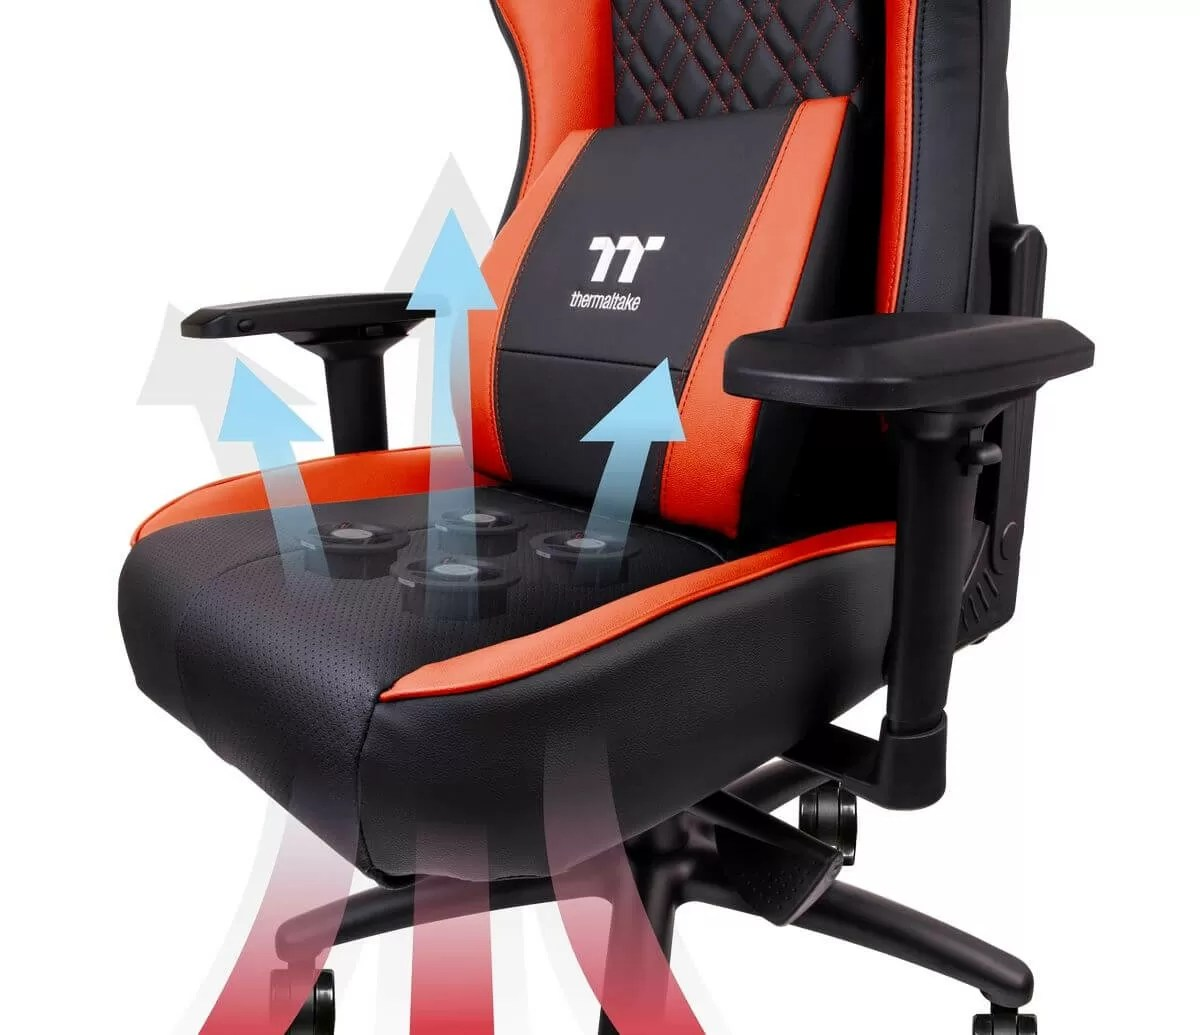 Thermaltakes new gaming chair cools your butt with four